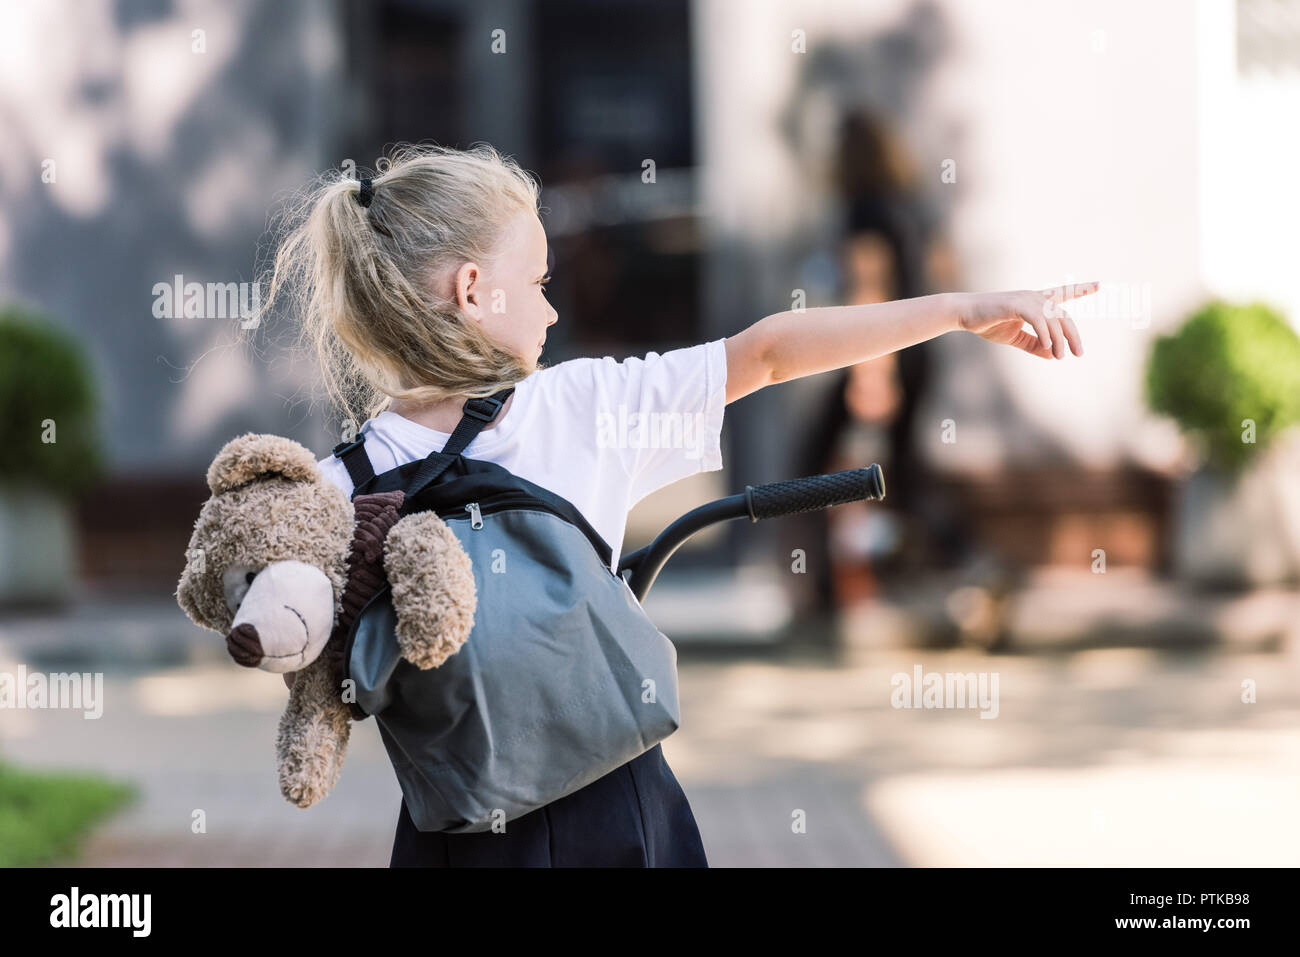 back view of adorable little schoolgirl with backpack and teddy bear riding scooter and pointing away with finger on street - Stock Image